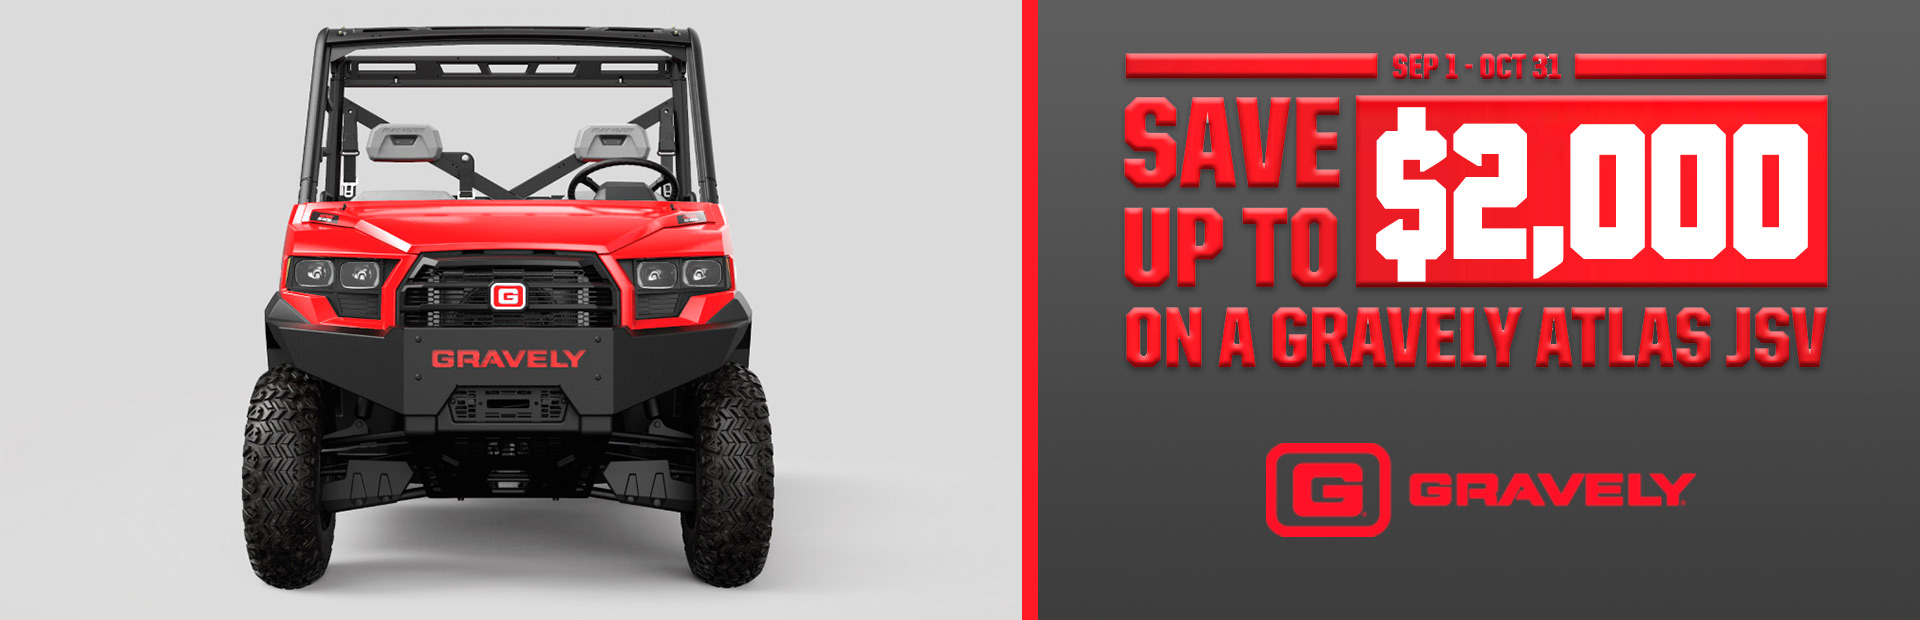 Gravely: Save Up To $2,000 on a Gravely Atlas JSV